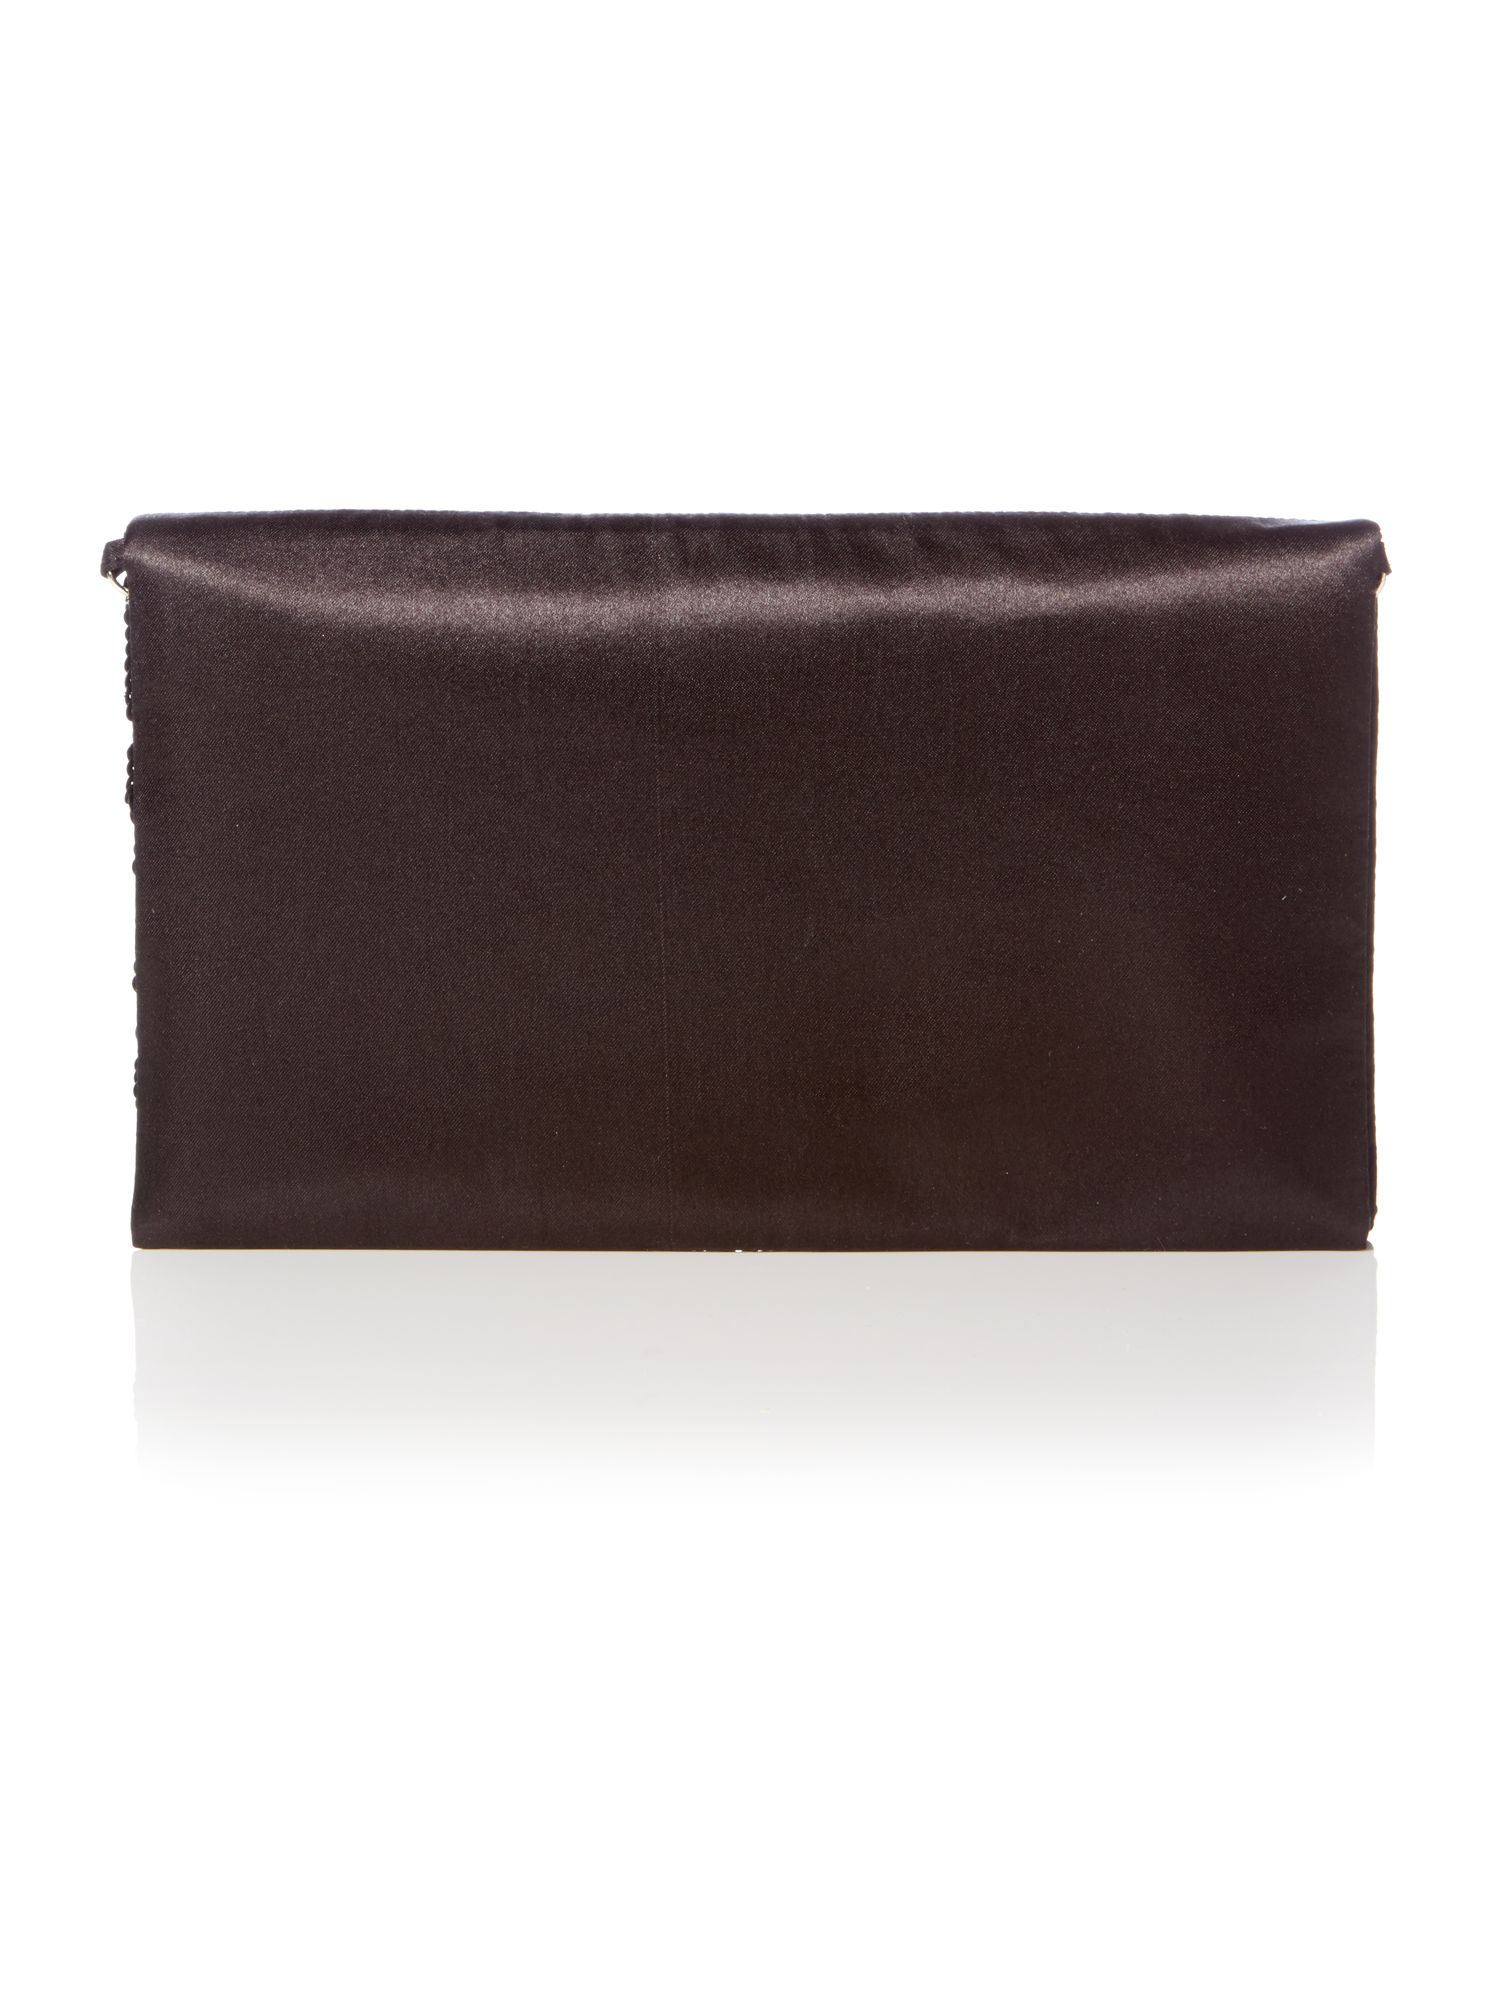 Gem flap over clutch bag